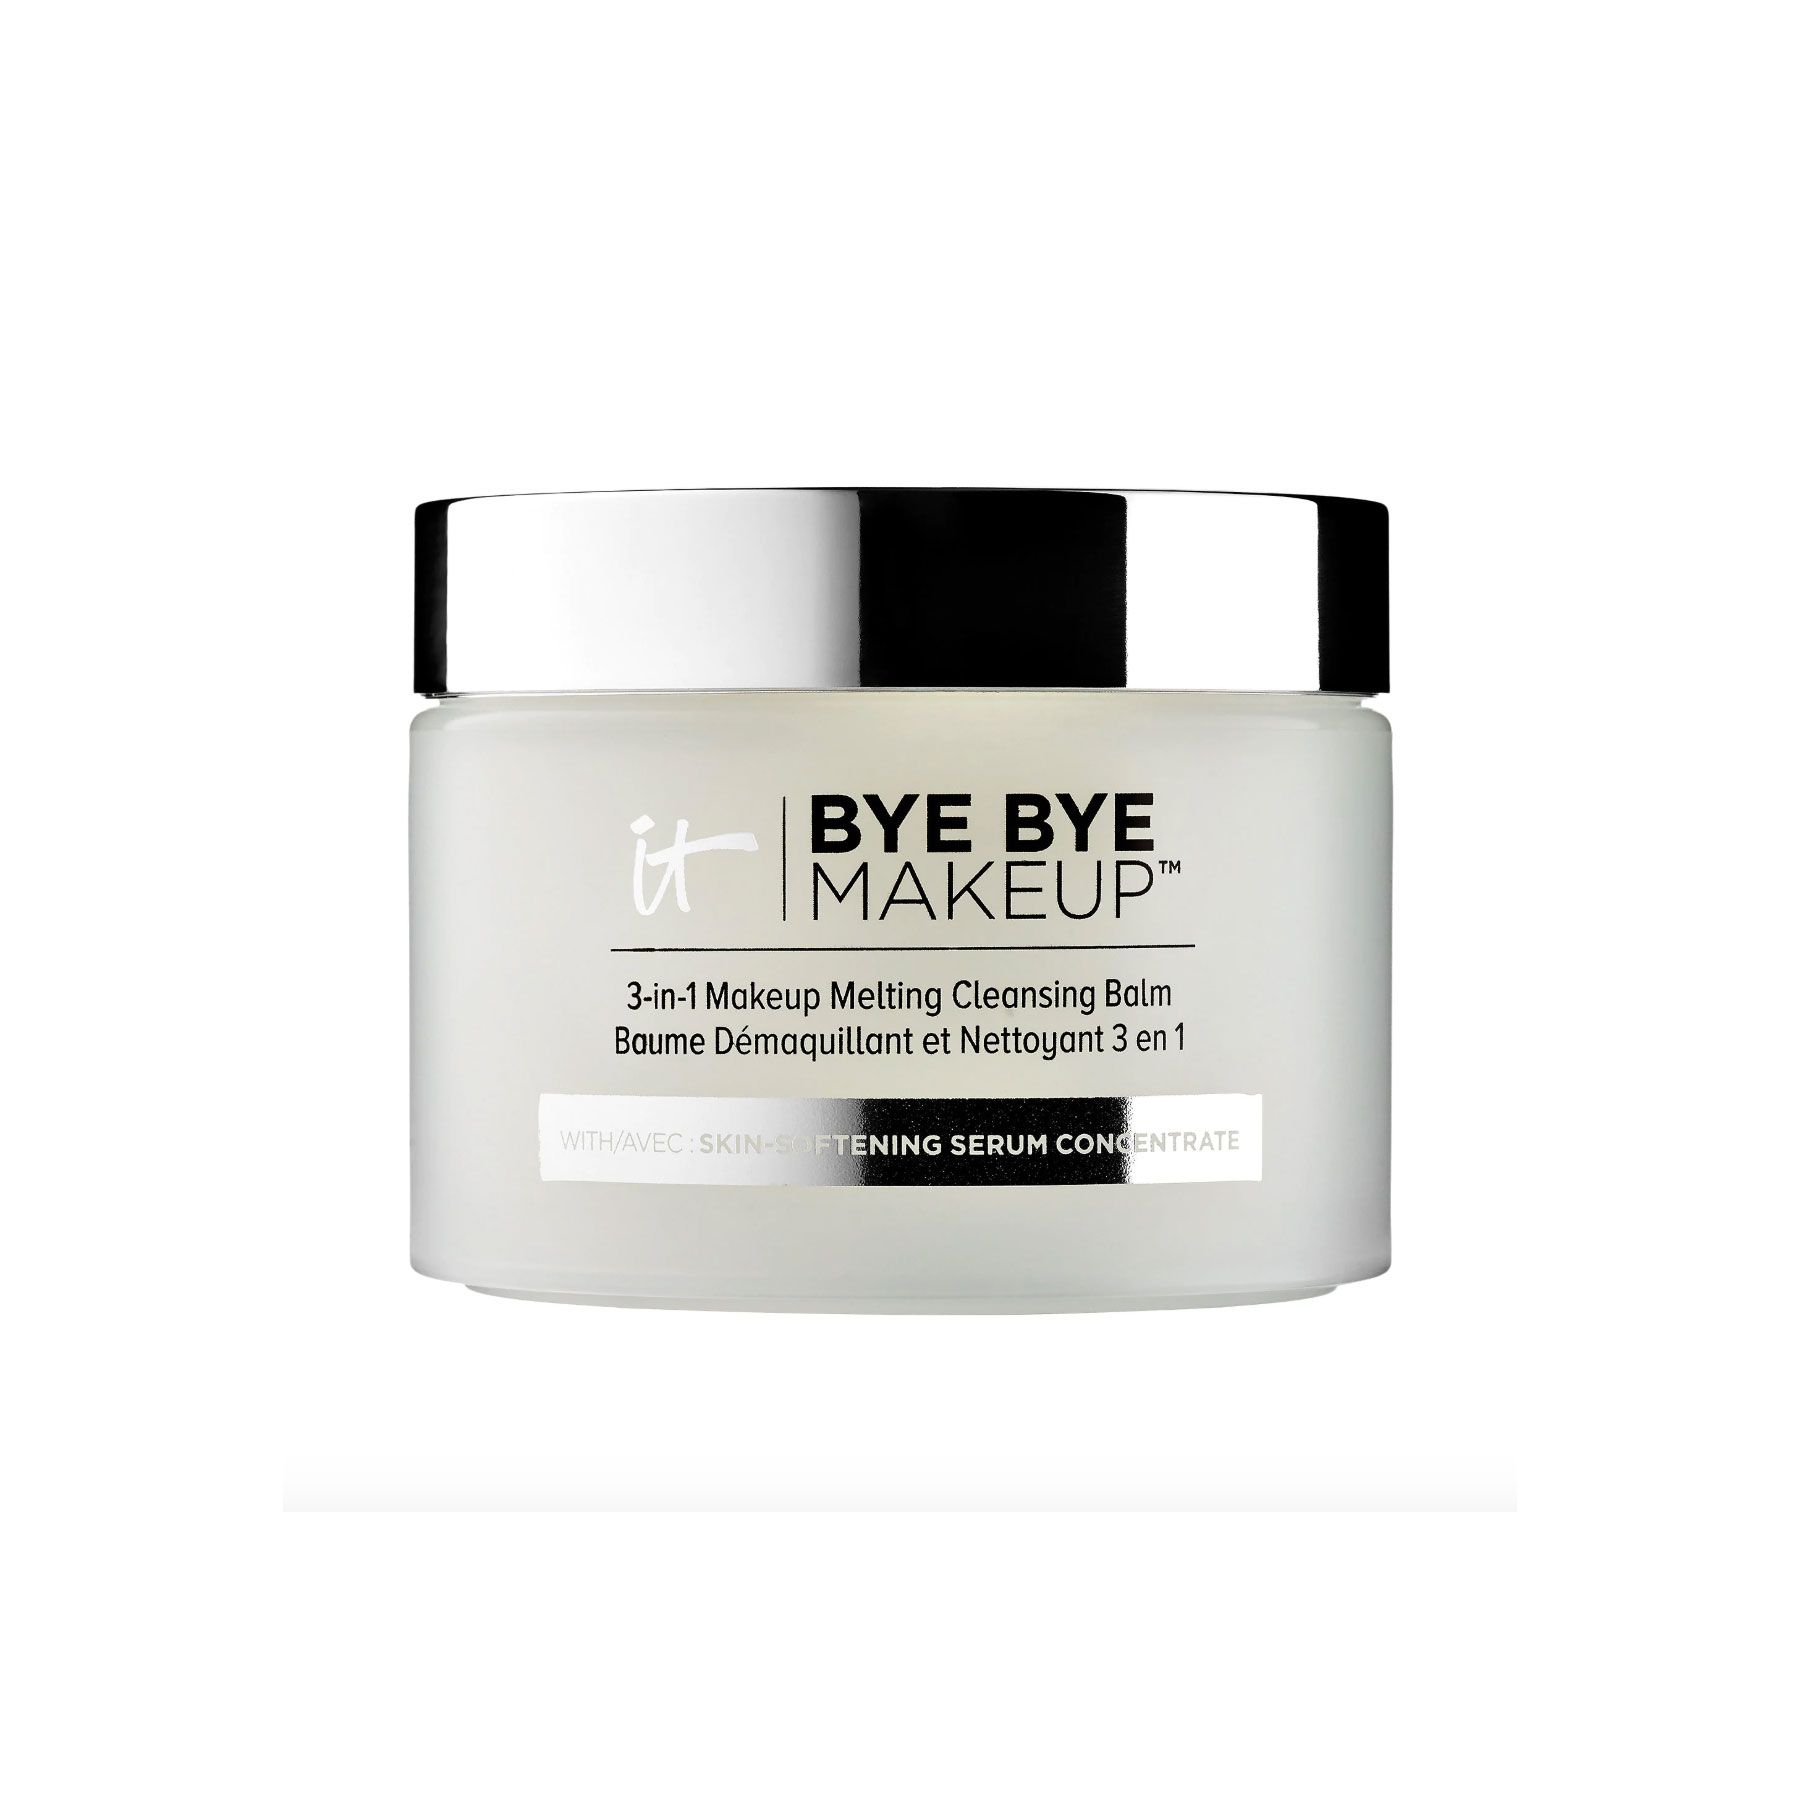 IT Cosmetics Makeup Cleansing Balm